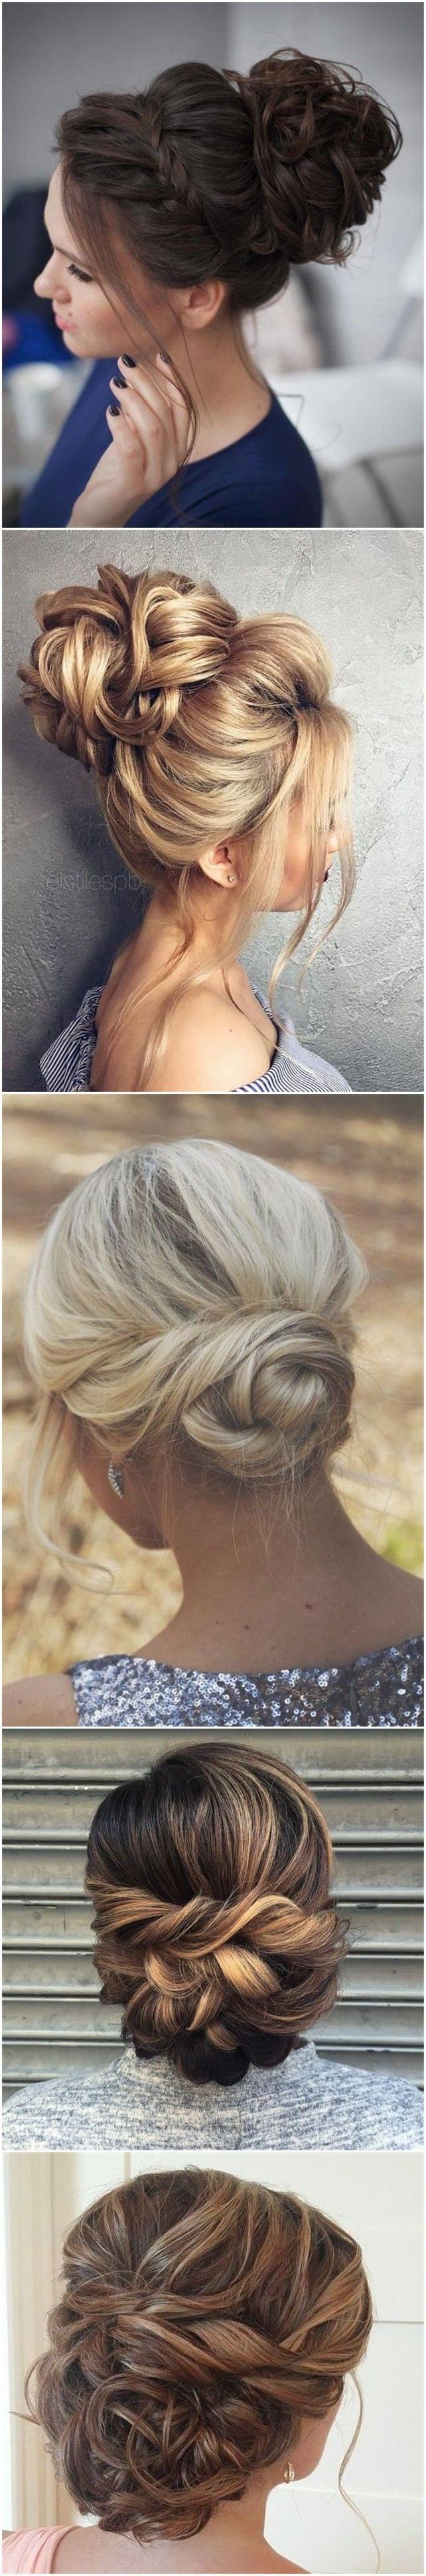 Düğün - Come And See Why You Can't Miss These 30 Wedding Updos For Long Hair